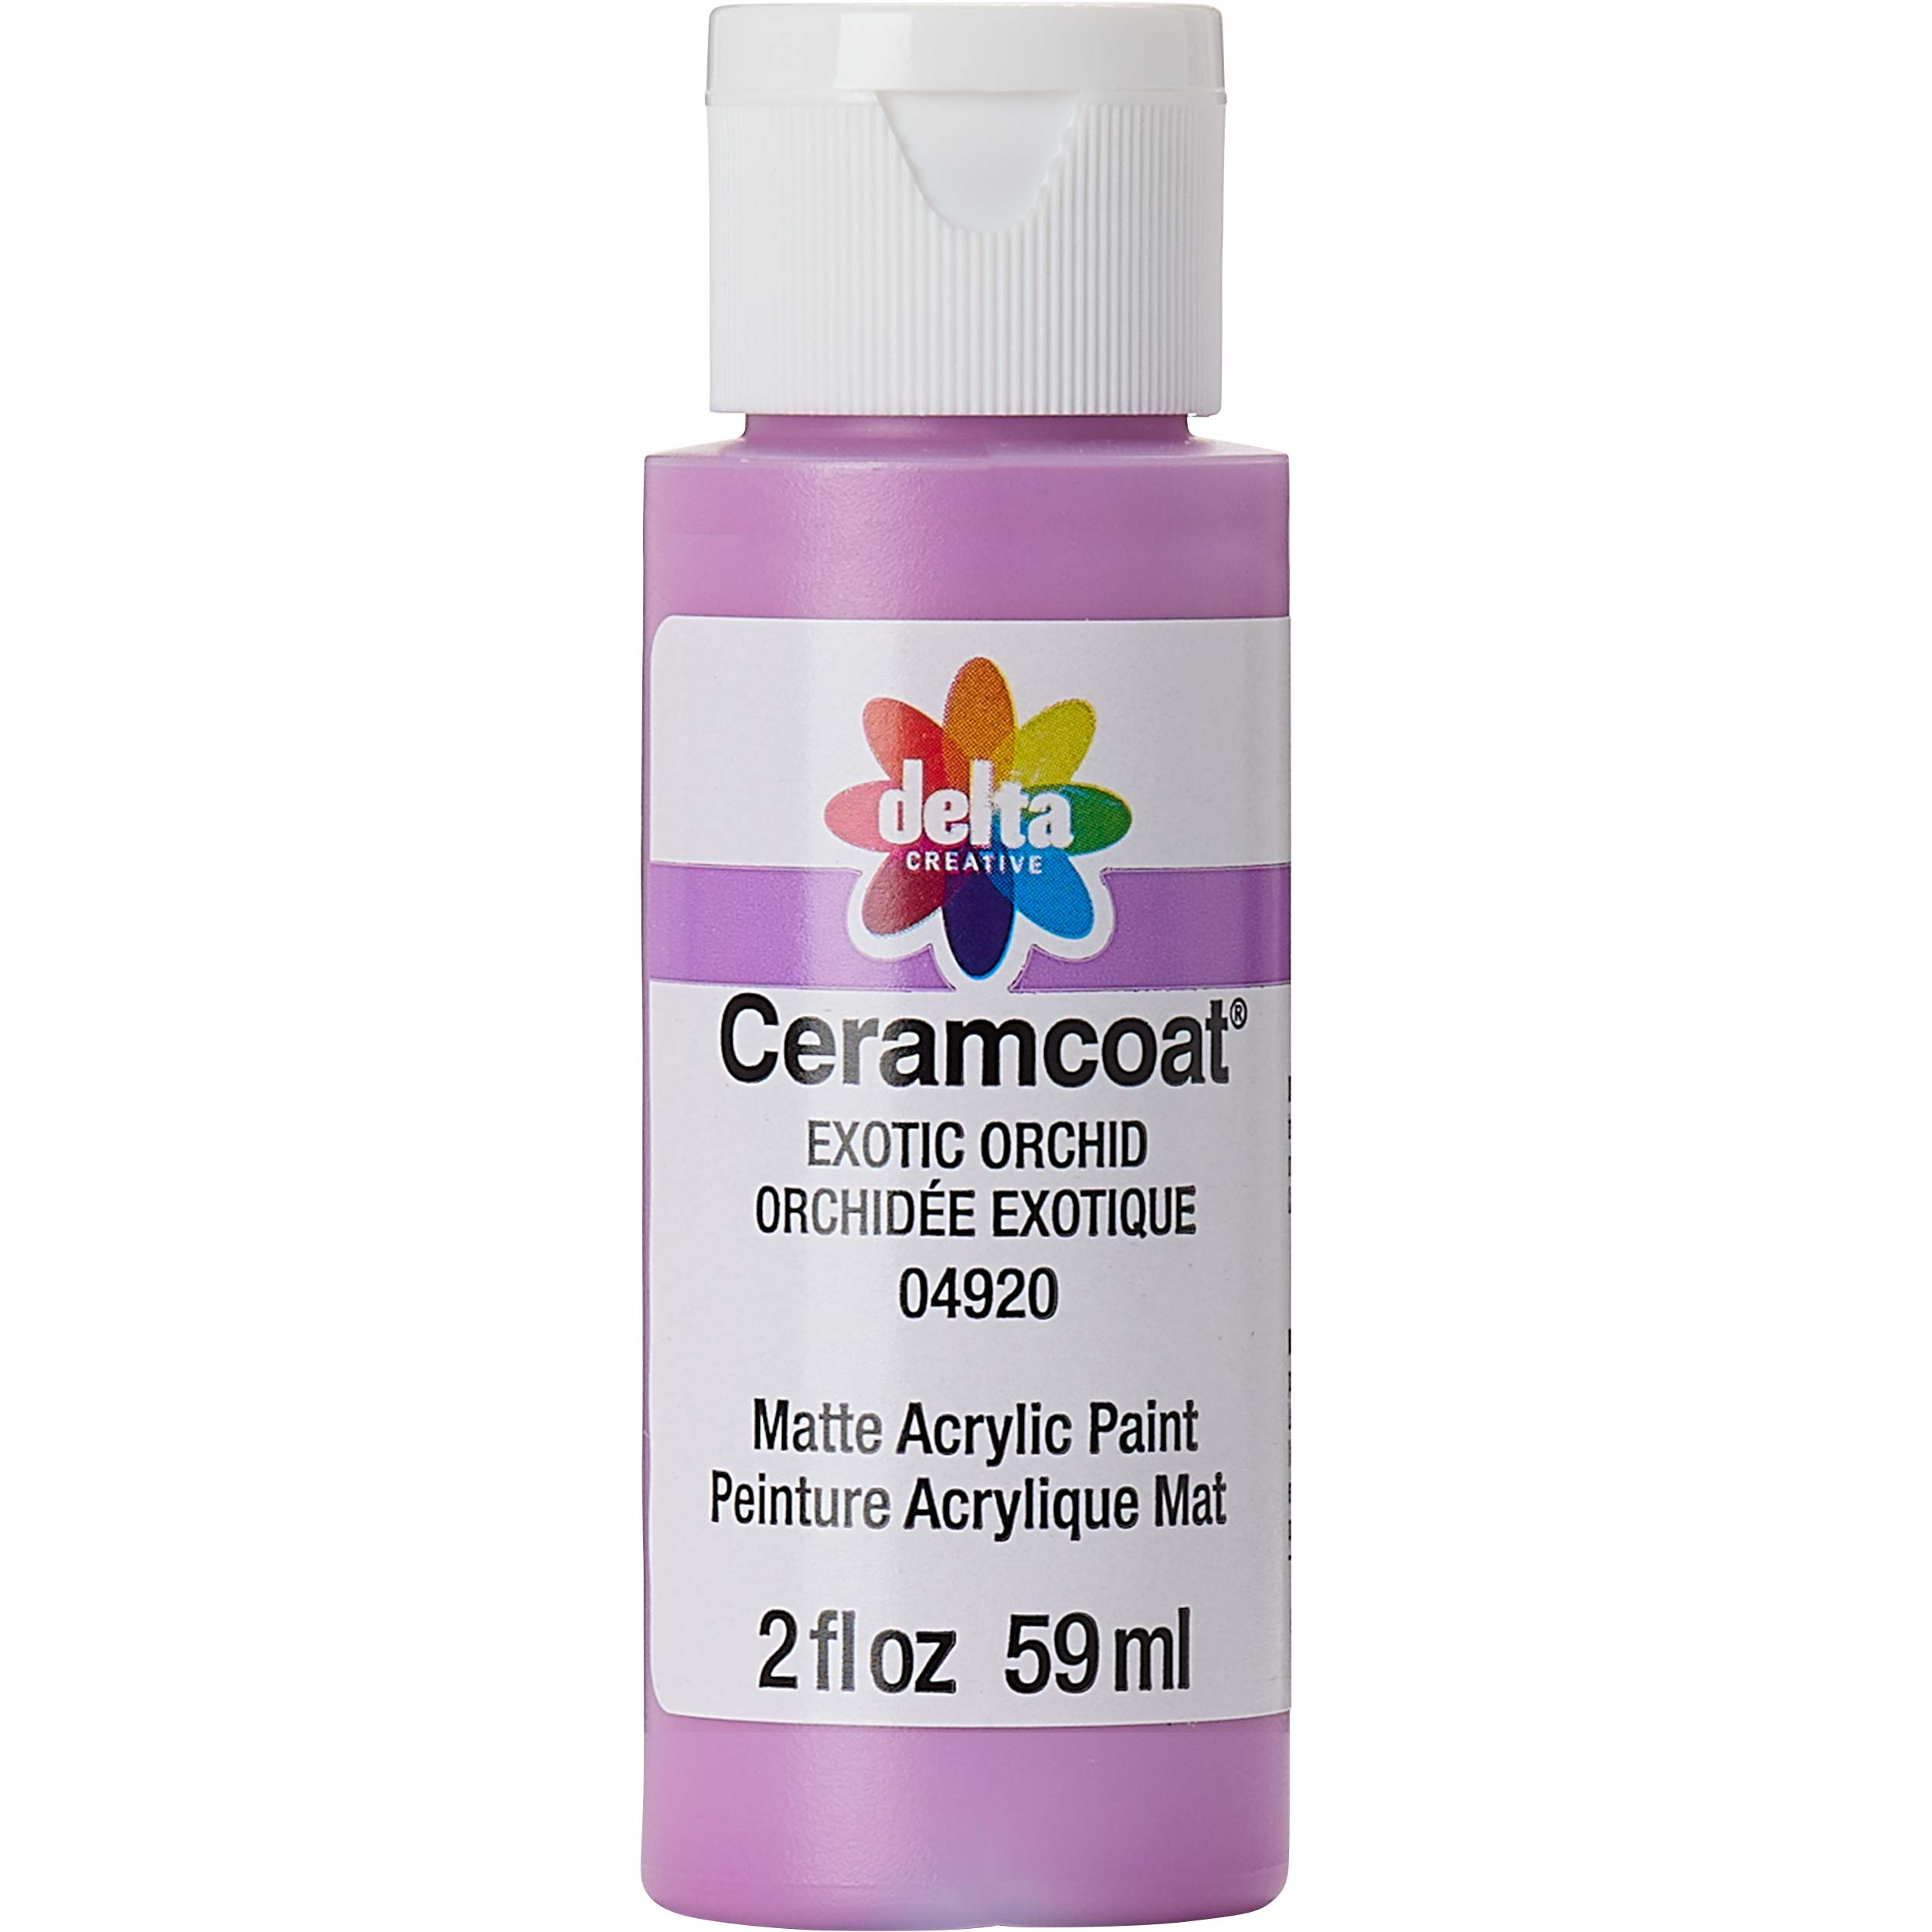 Delta Ceramcoat ® Acrylic Paint - Exotic Orchid, 2 oz. - 04920